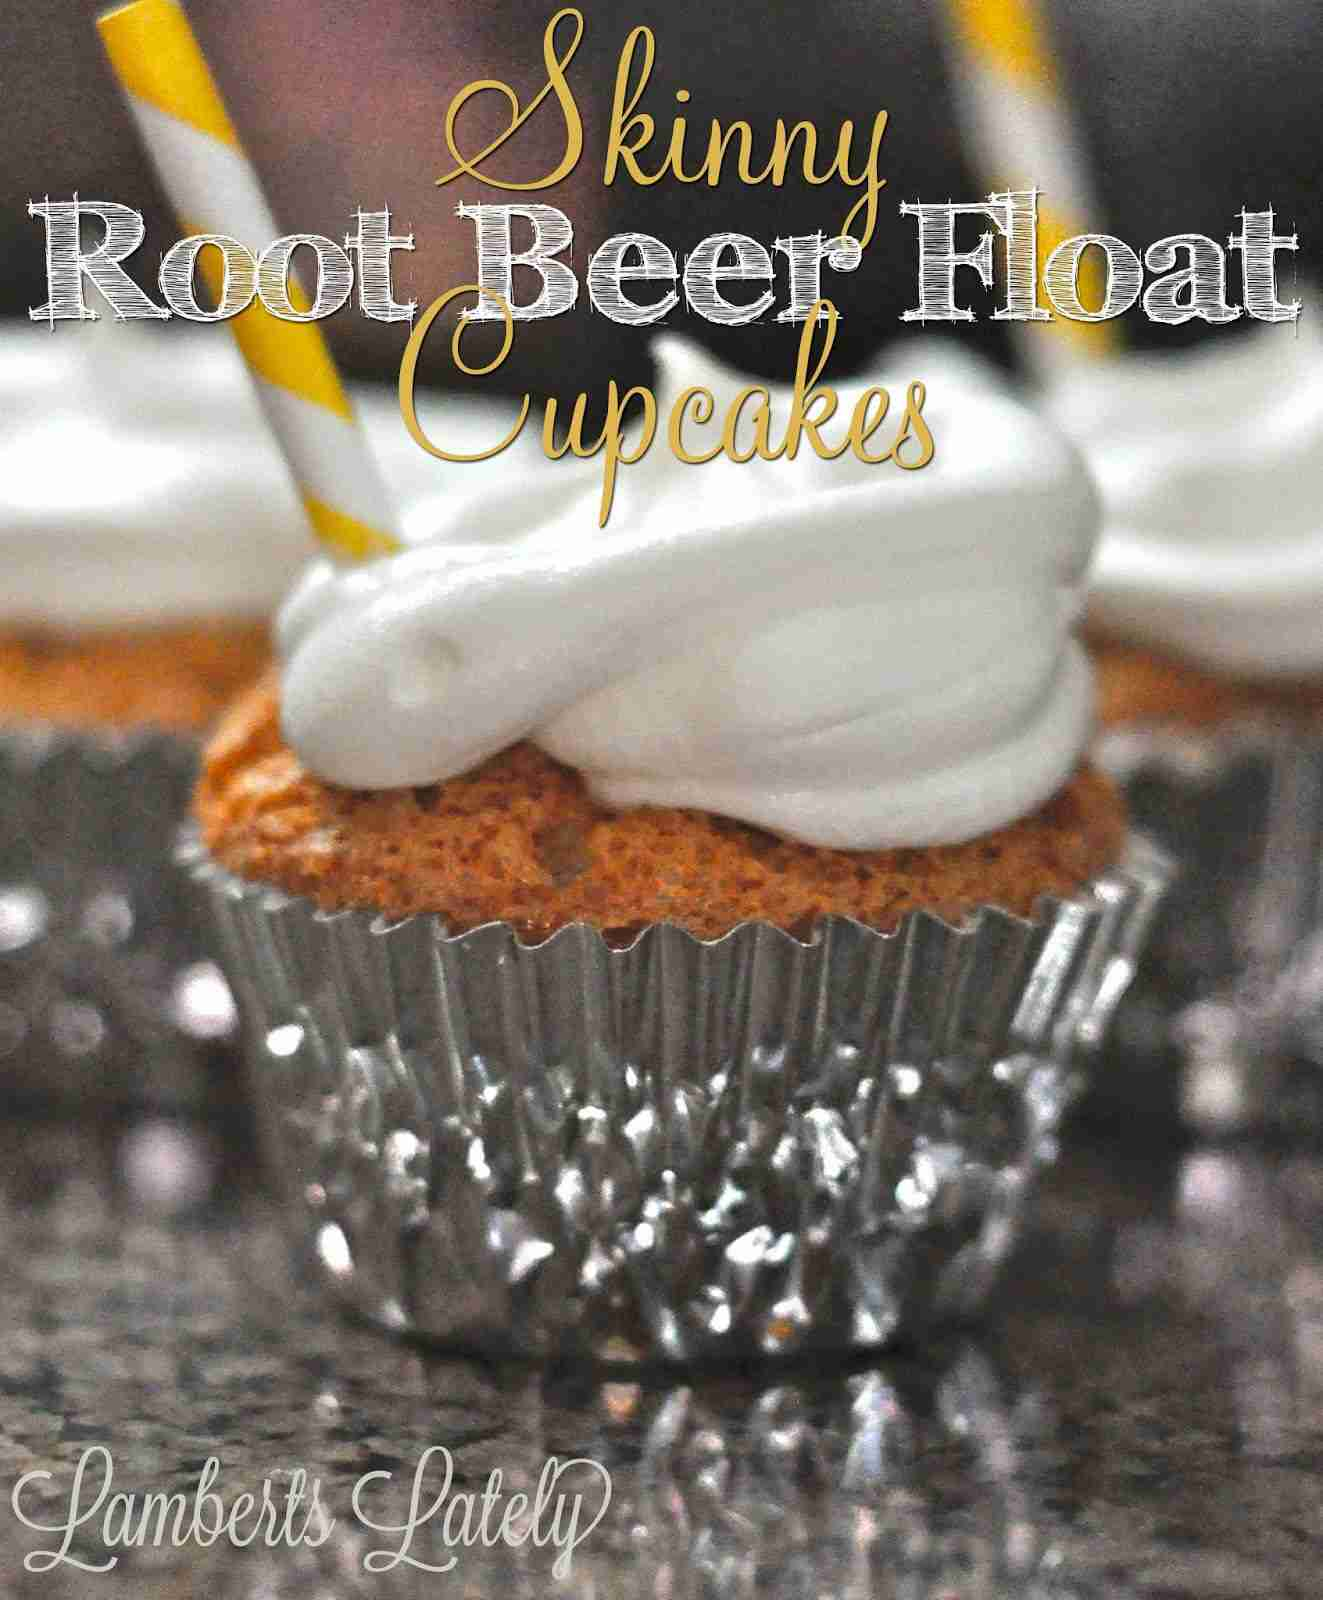 Skinny Root Beer Float Cupcakes - great cupcake recipe with under 100 calories in each one!